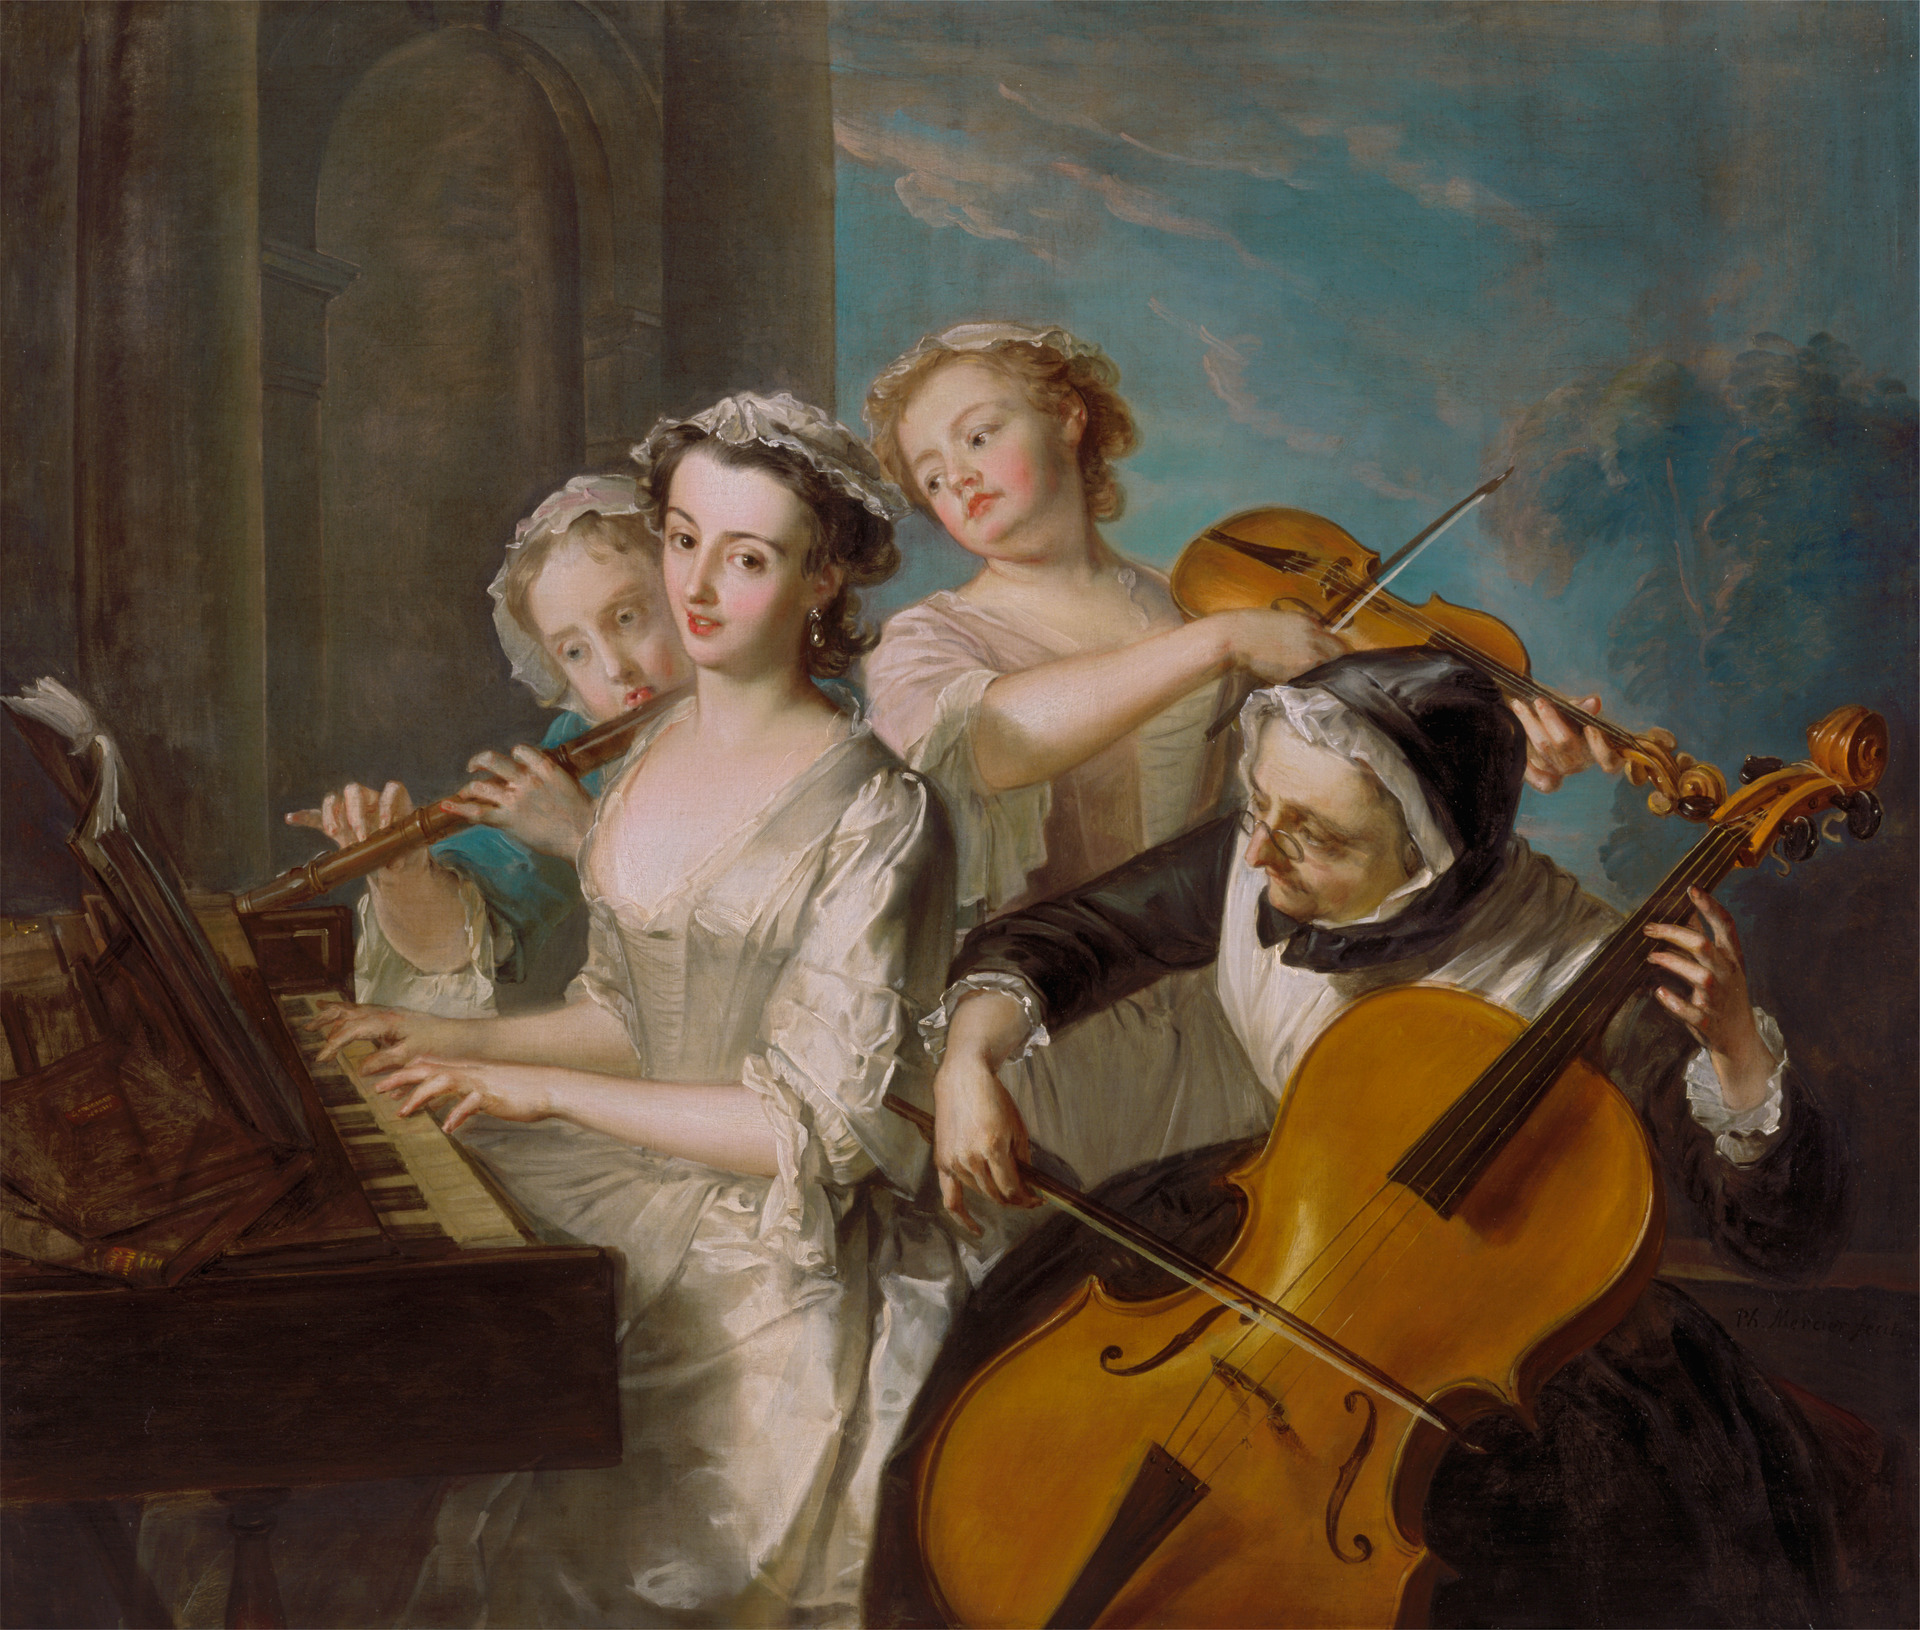 Philippe Mercier, 1689 or 1691–1760, Franco-German, active in Britain (from 1716),  The Sense of Hearing,  1744 to 1747, Oil on canvas, Yale Center for British Art, Paul Mellon Collection .